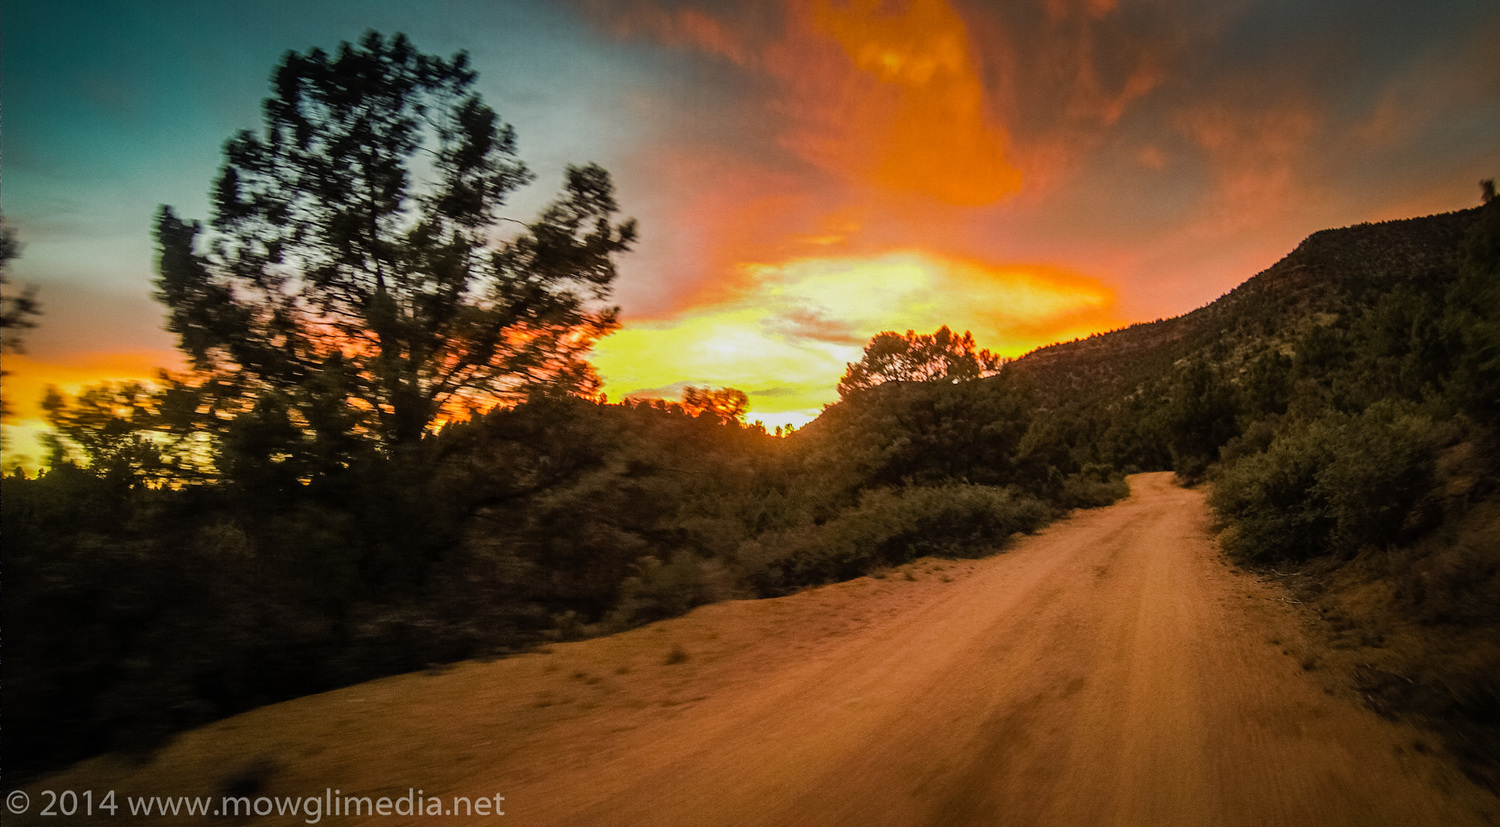 Another damn fine evening on the trail, somewhere between Payson and Pine